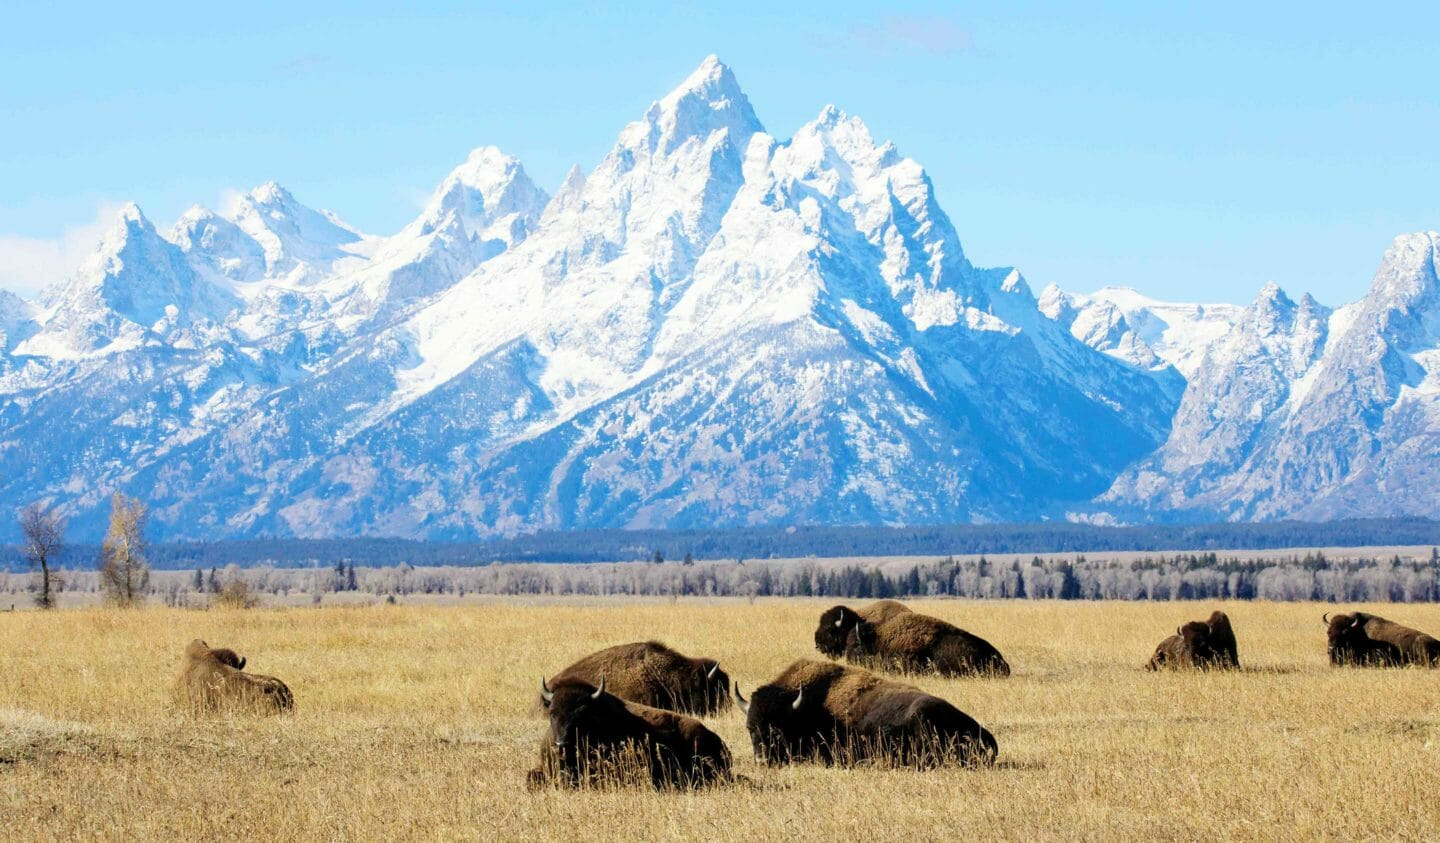 bison in the field at Grand Teton National Park